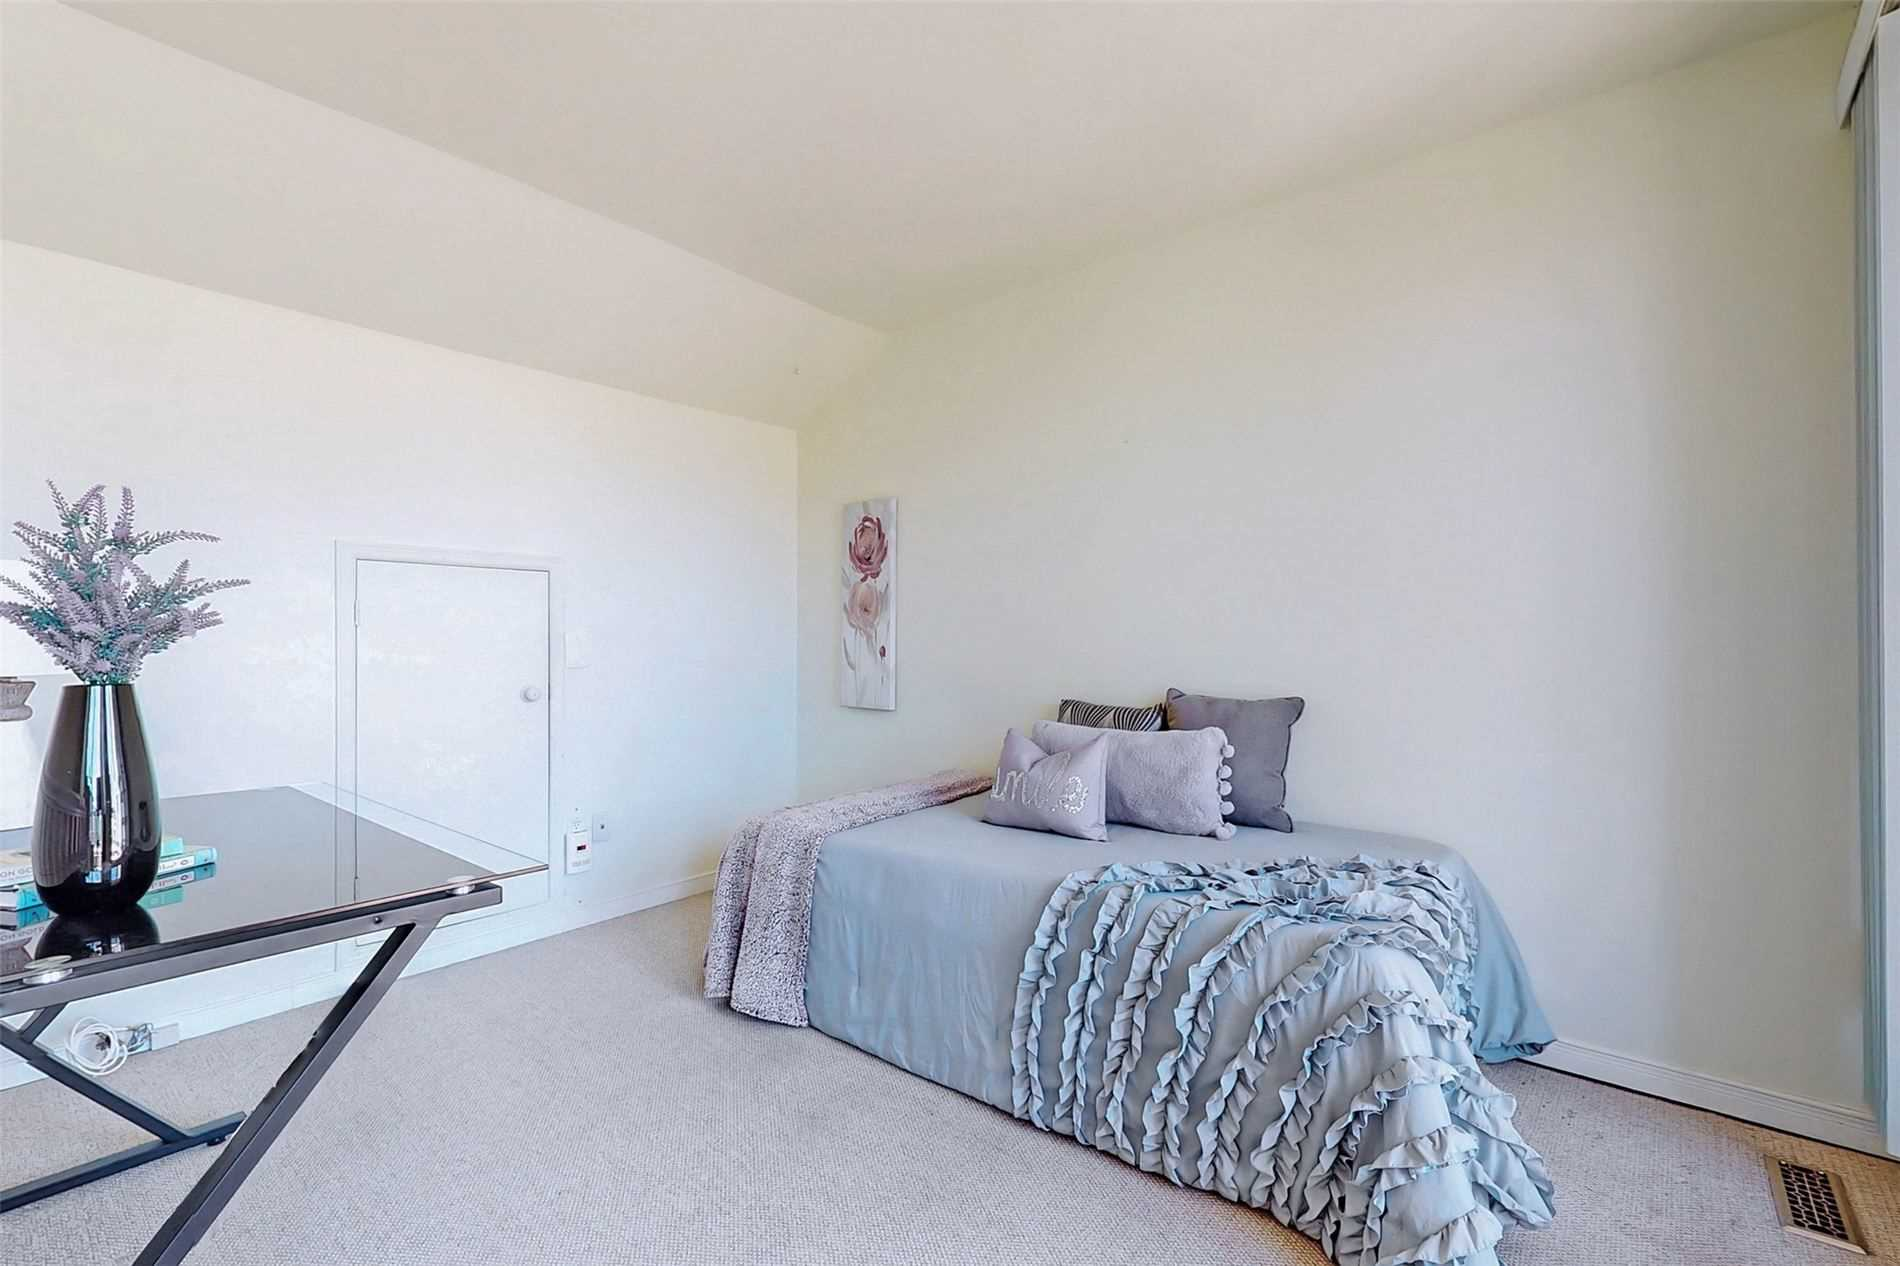 Image 31 of 40 showing inside of 3 Bedroom Condo Townhouse 3-Storey for Sale at 14 Cumberland Lane Unit# 7, Ajax L1S7K4